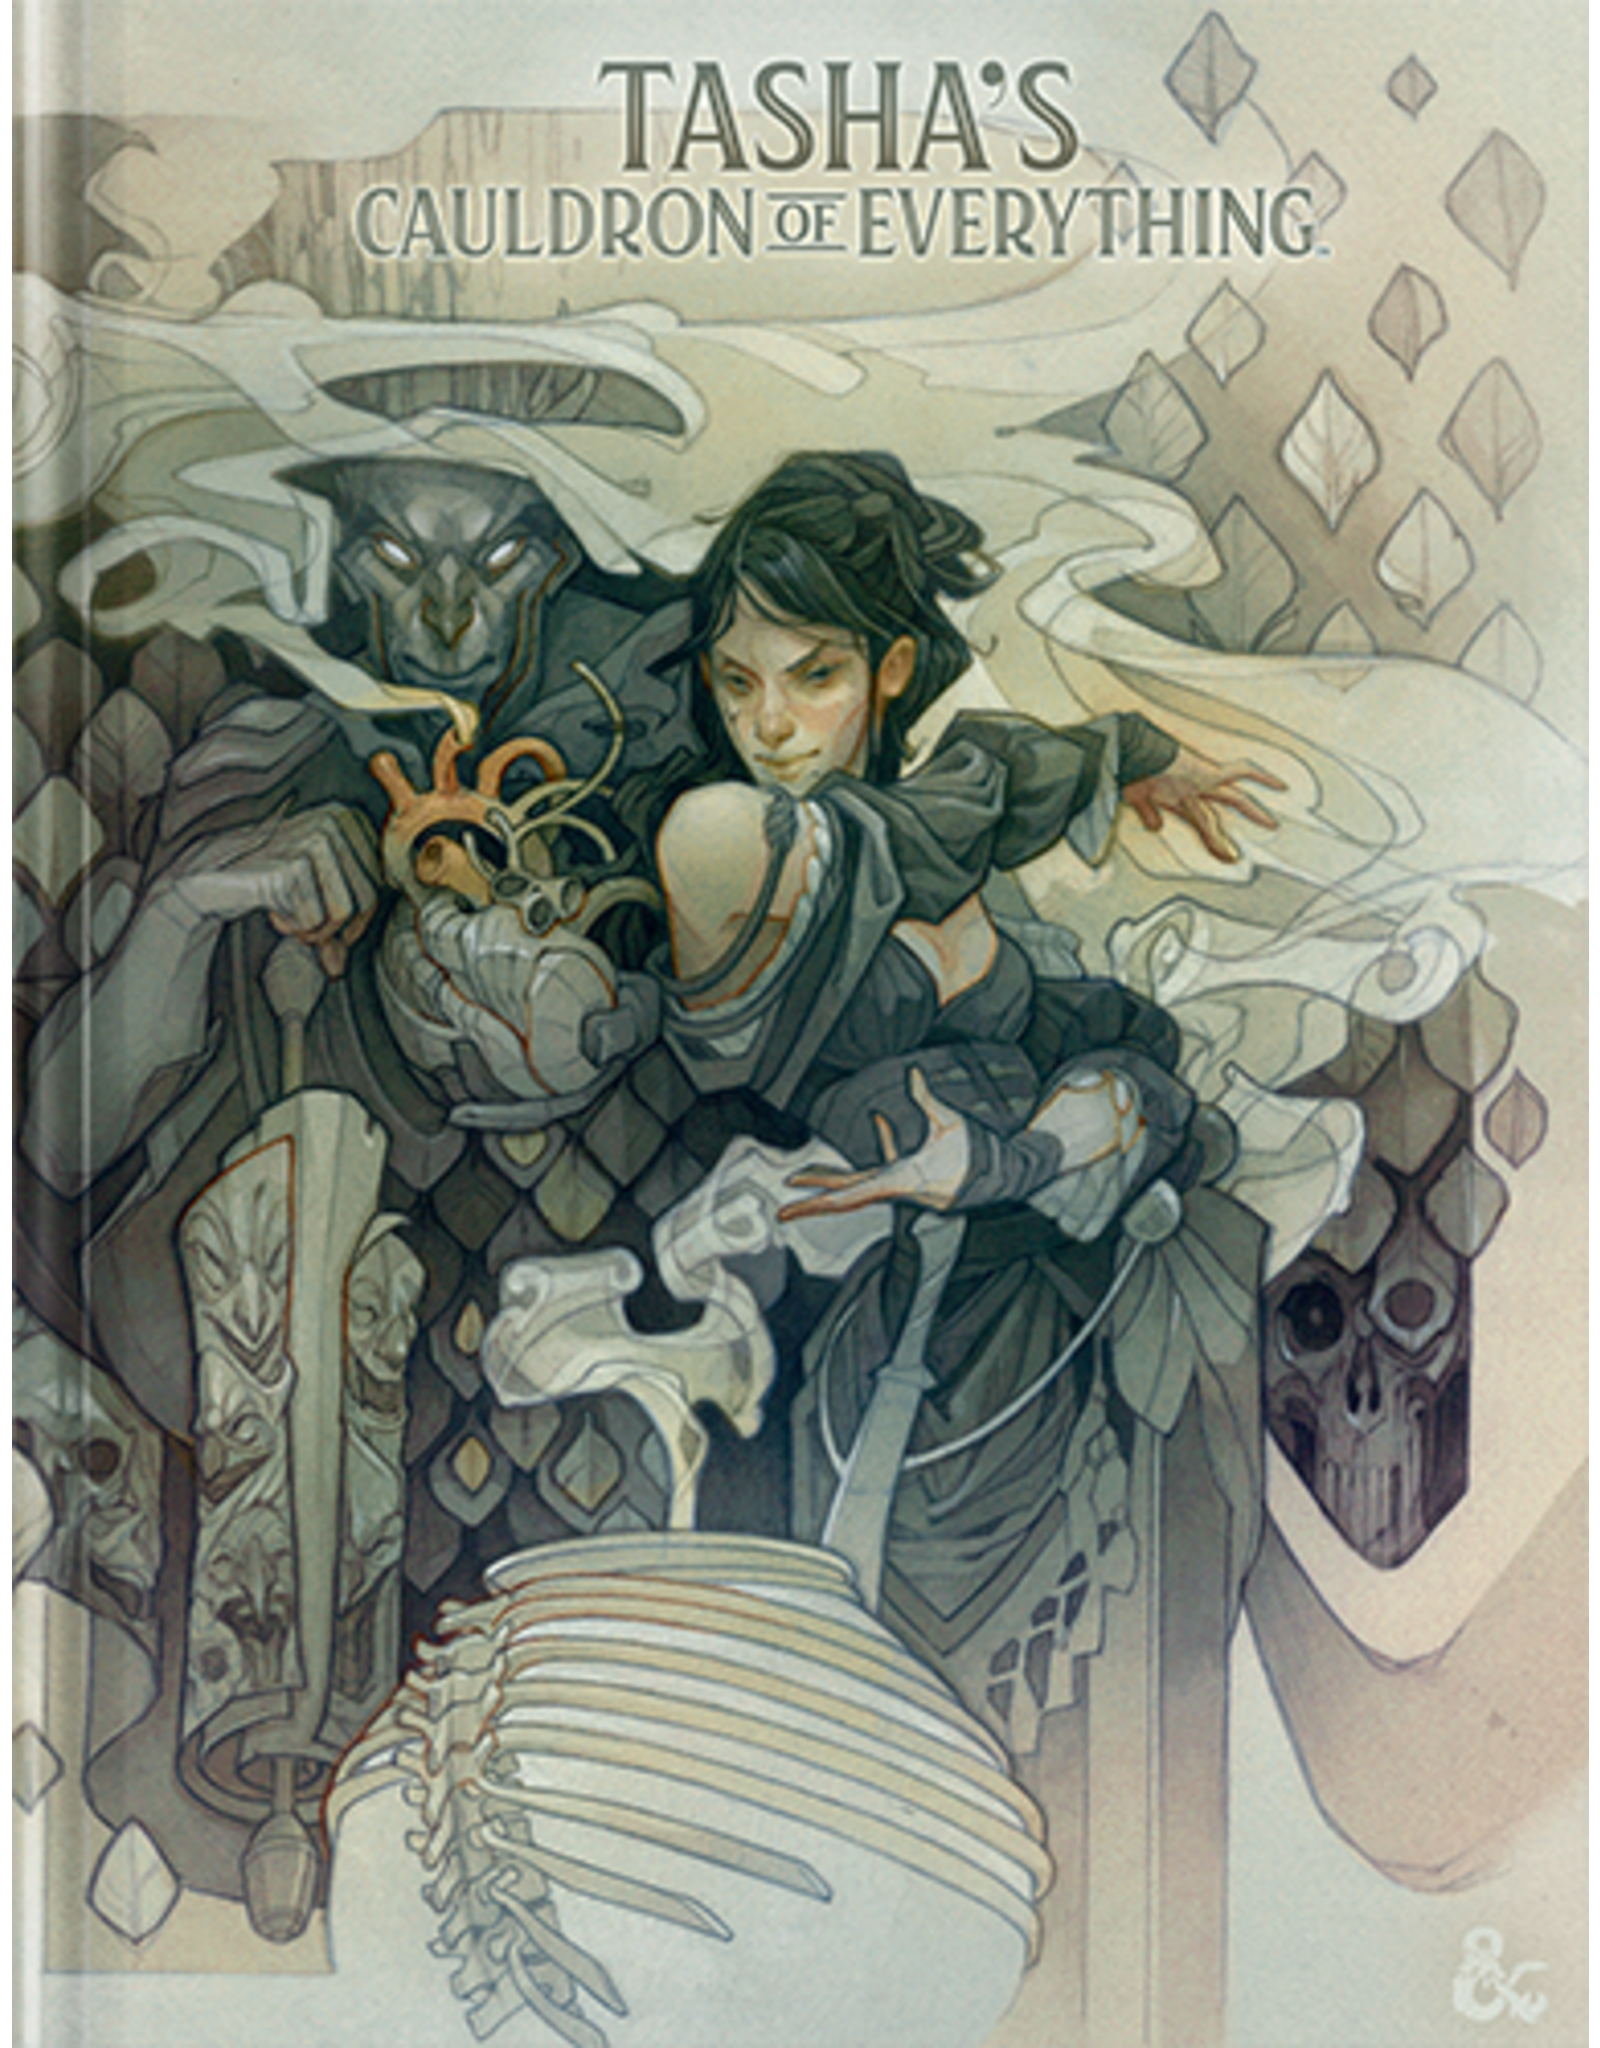 D&D 5.0: Tasha's Cauldron of Everything Limited Edition Alternate Cover